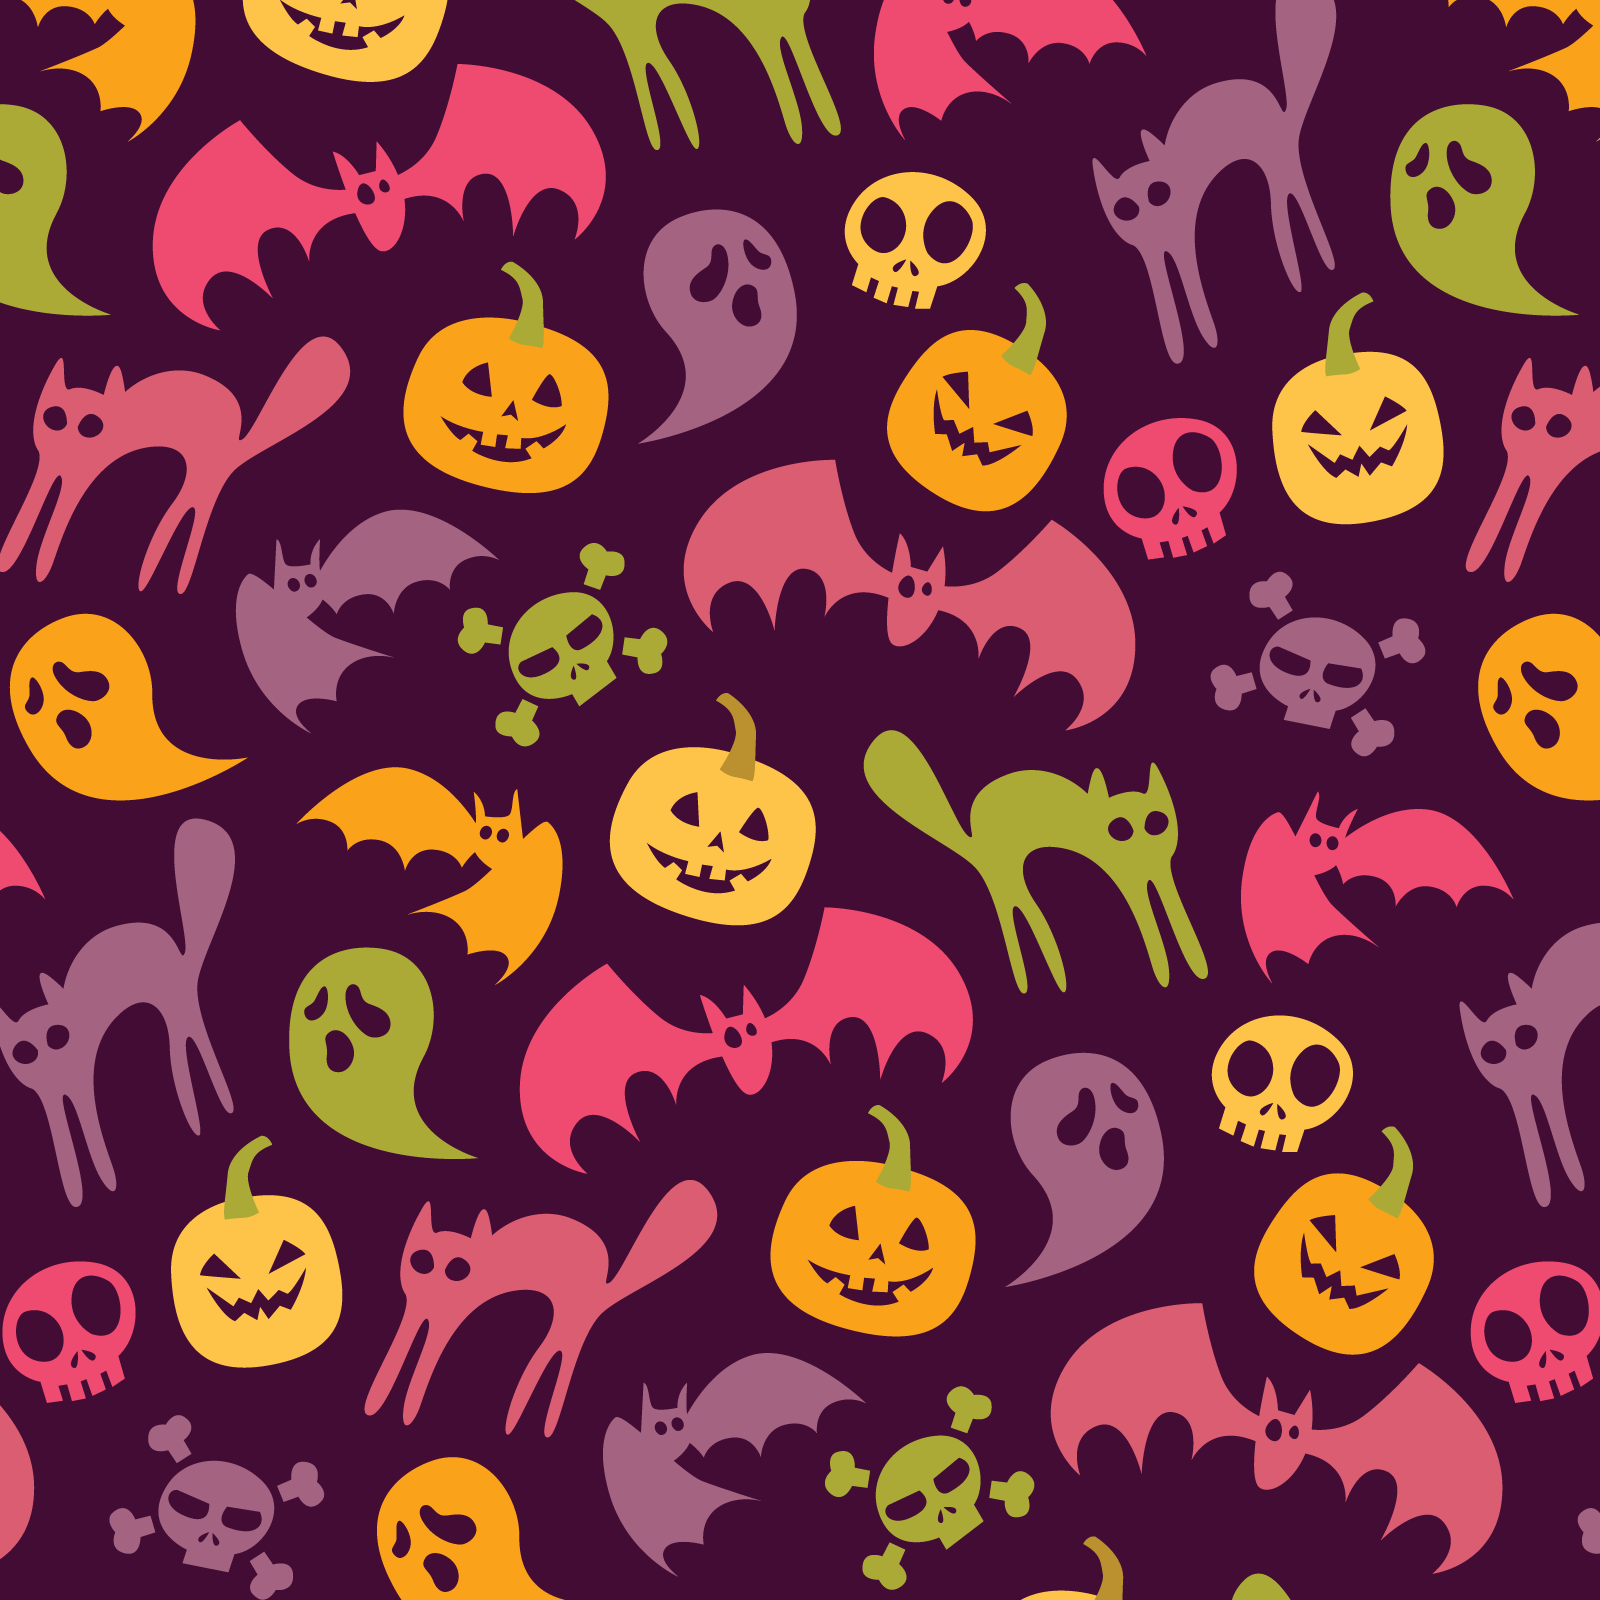 Neon halloween pattern - purple variation